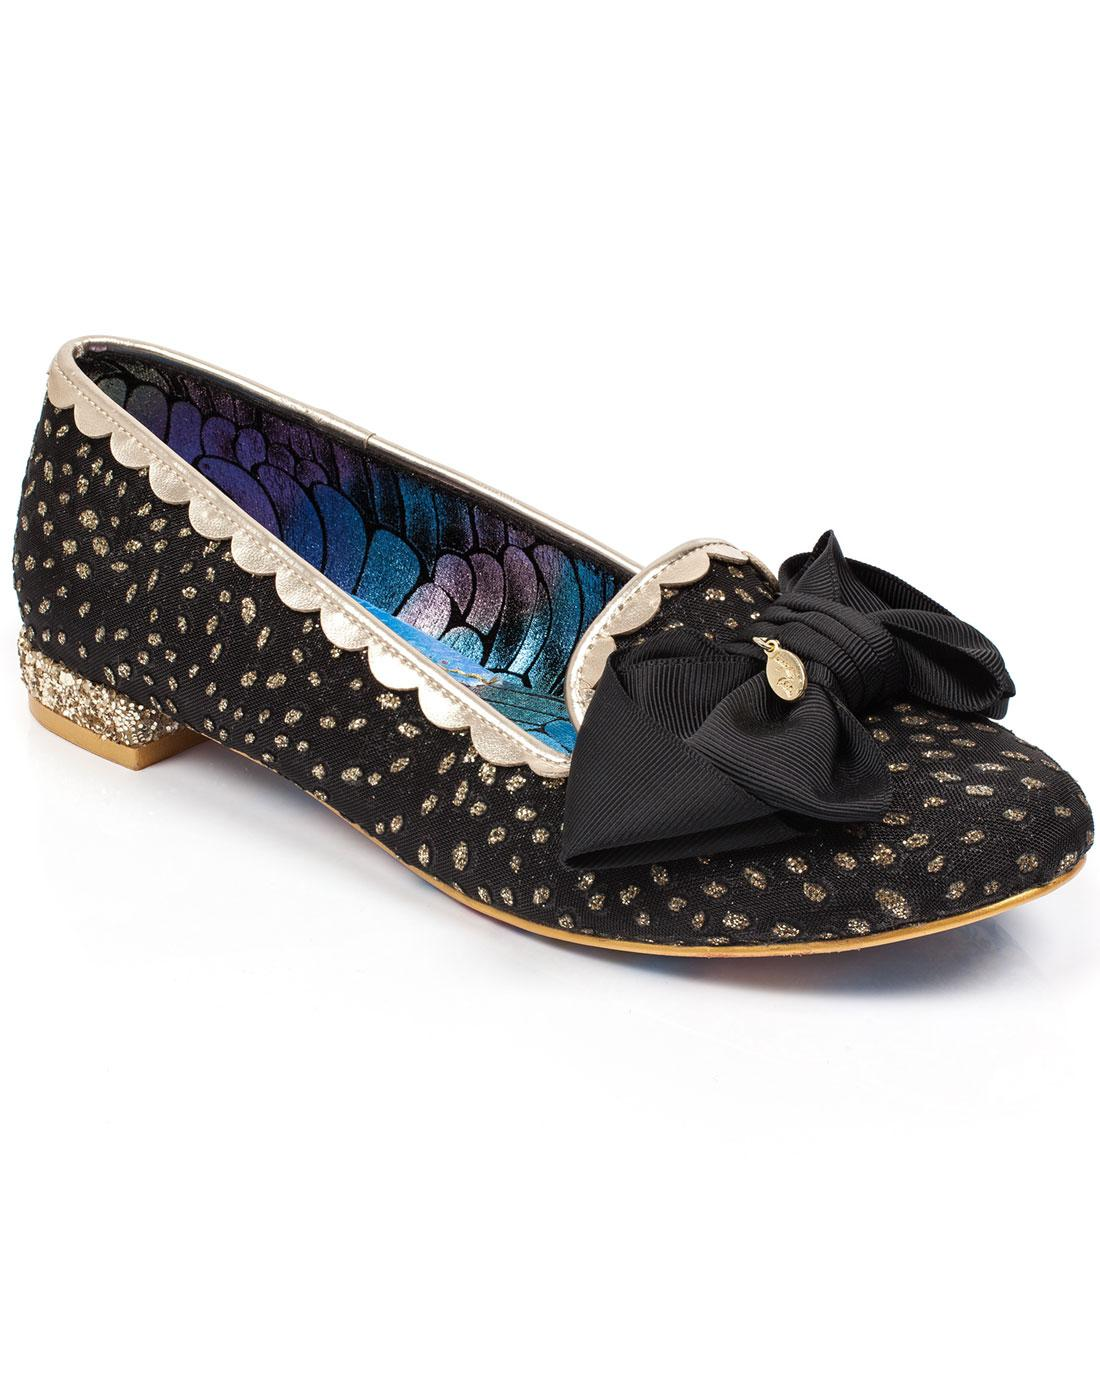 Sulu IRREGULAR CHOICE 50s Black And Gold Bow Flats